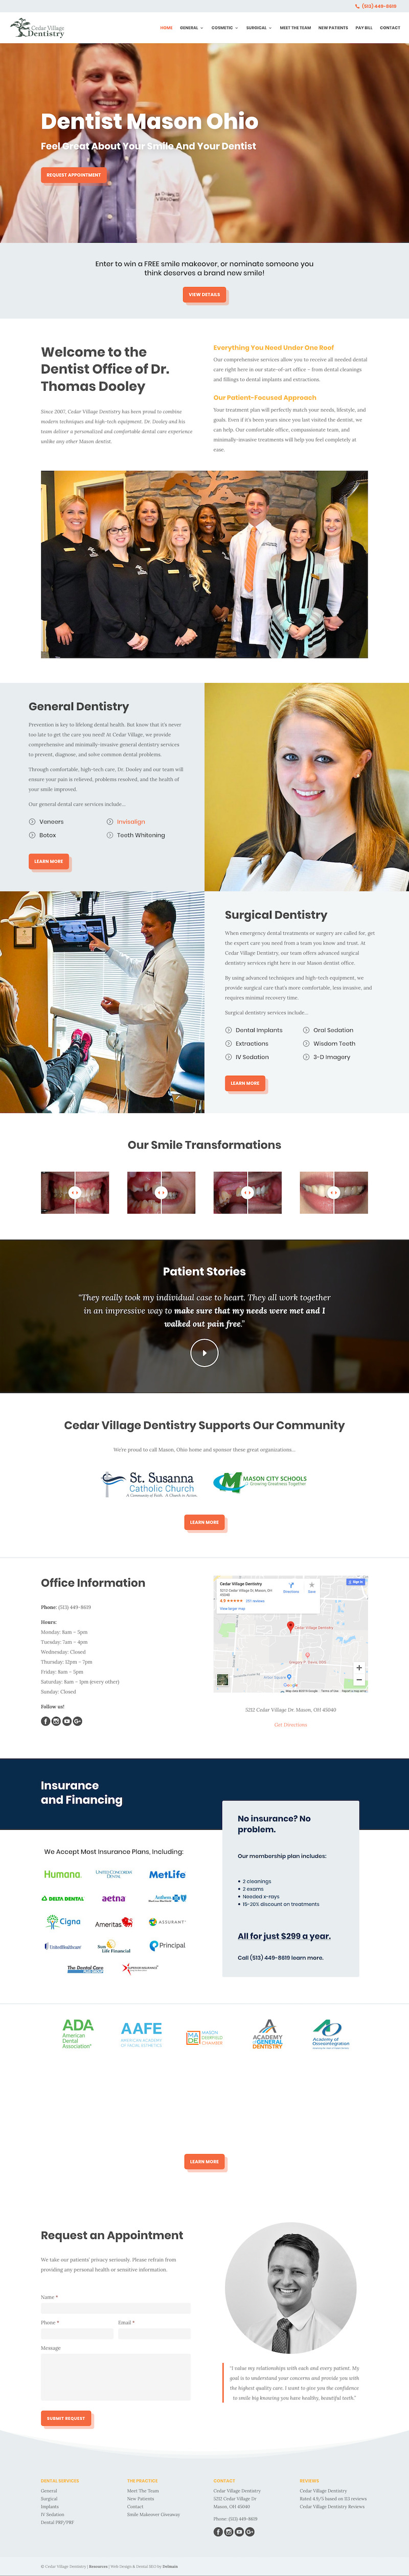 Cedar-Village-Dentistry-Copywriting-Clip.jpg